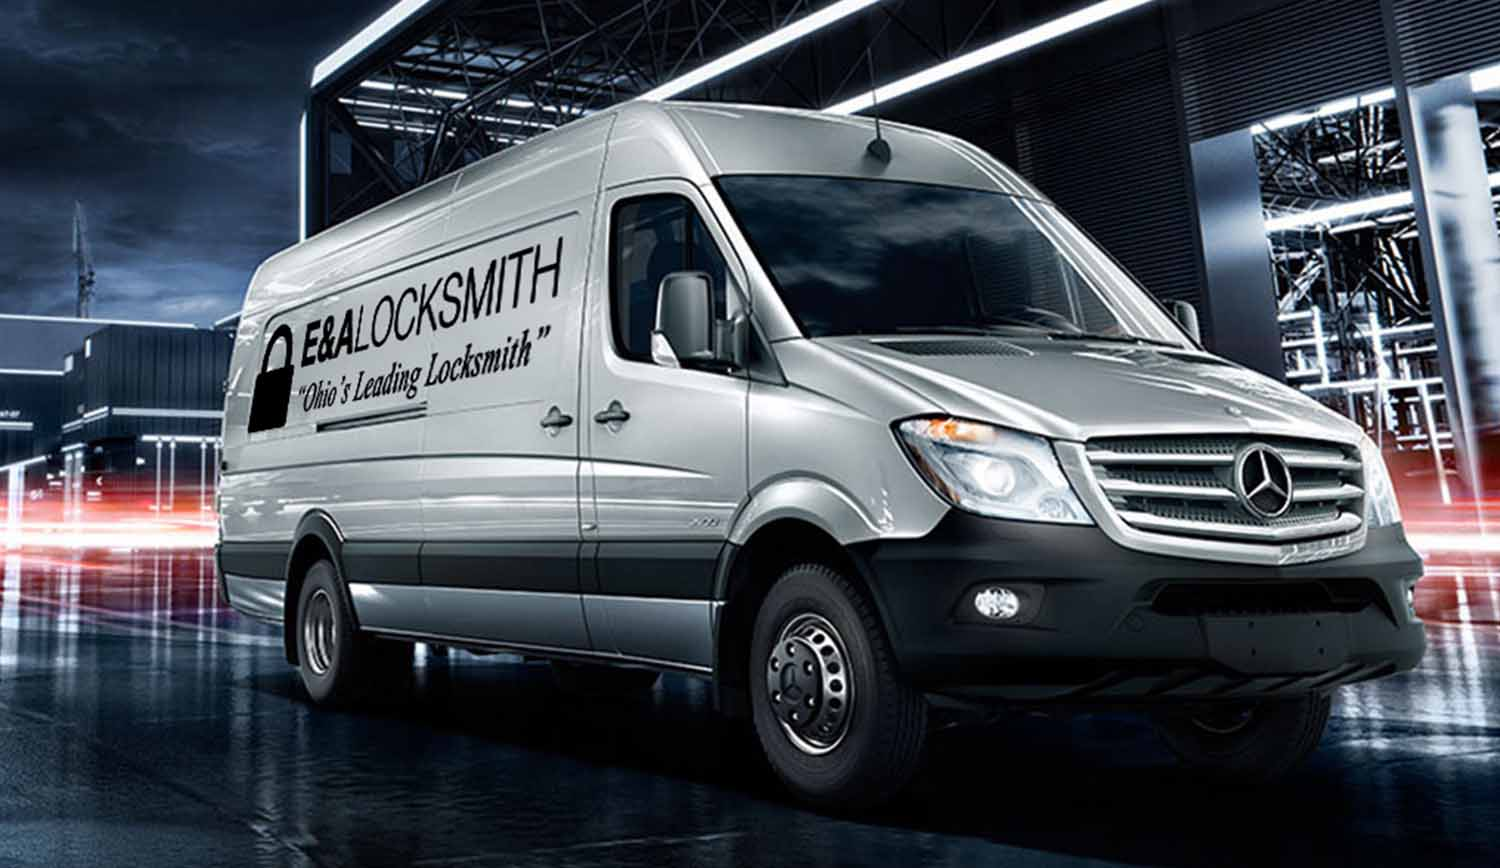 Locksmith Mobile Unit